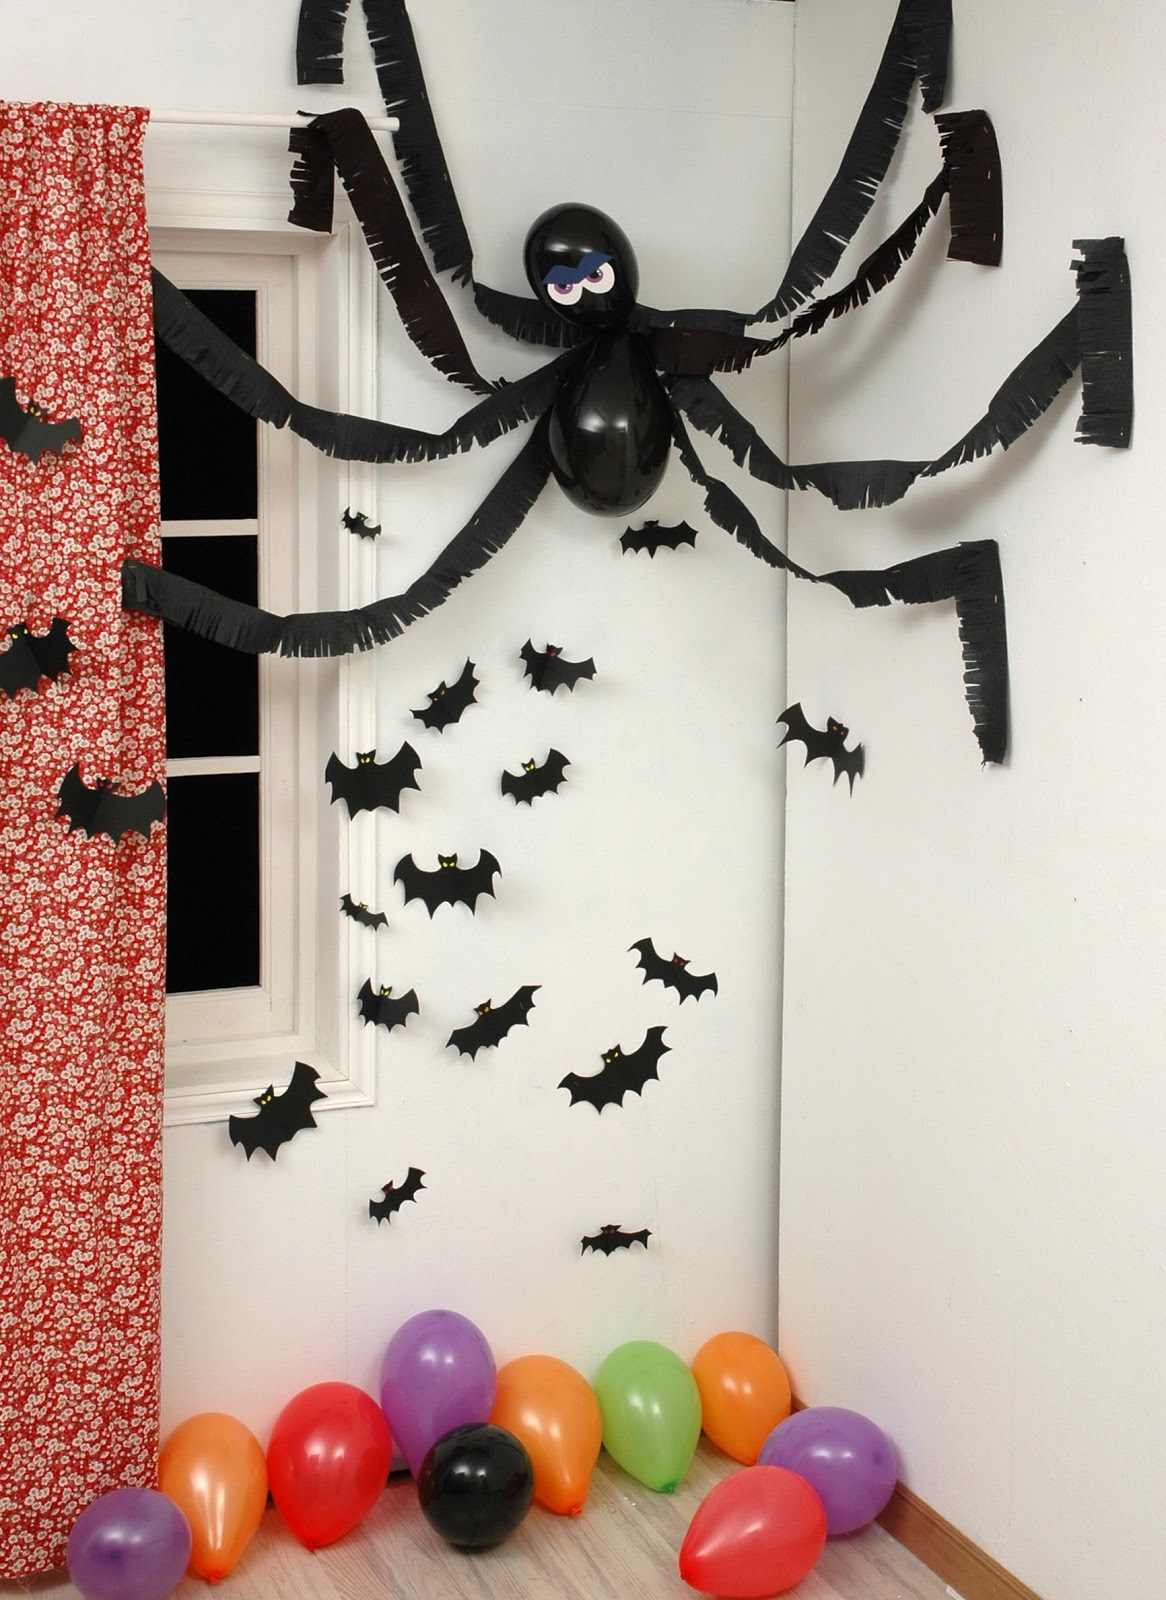 Stars and celebrities como hacer decoraciones tenebrosas for Como hacer decoracion con globos